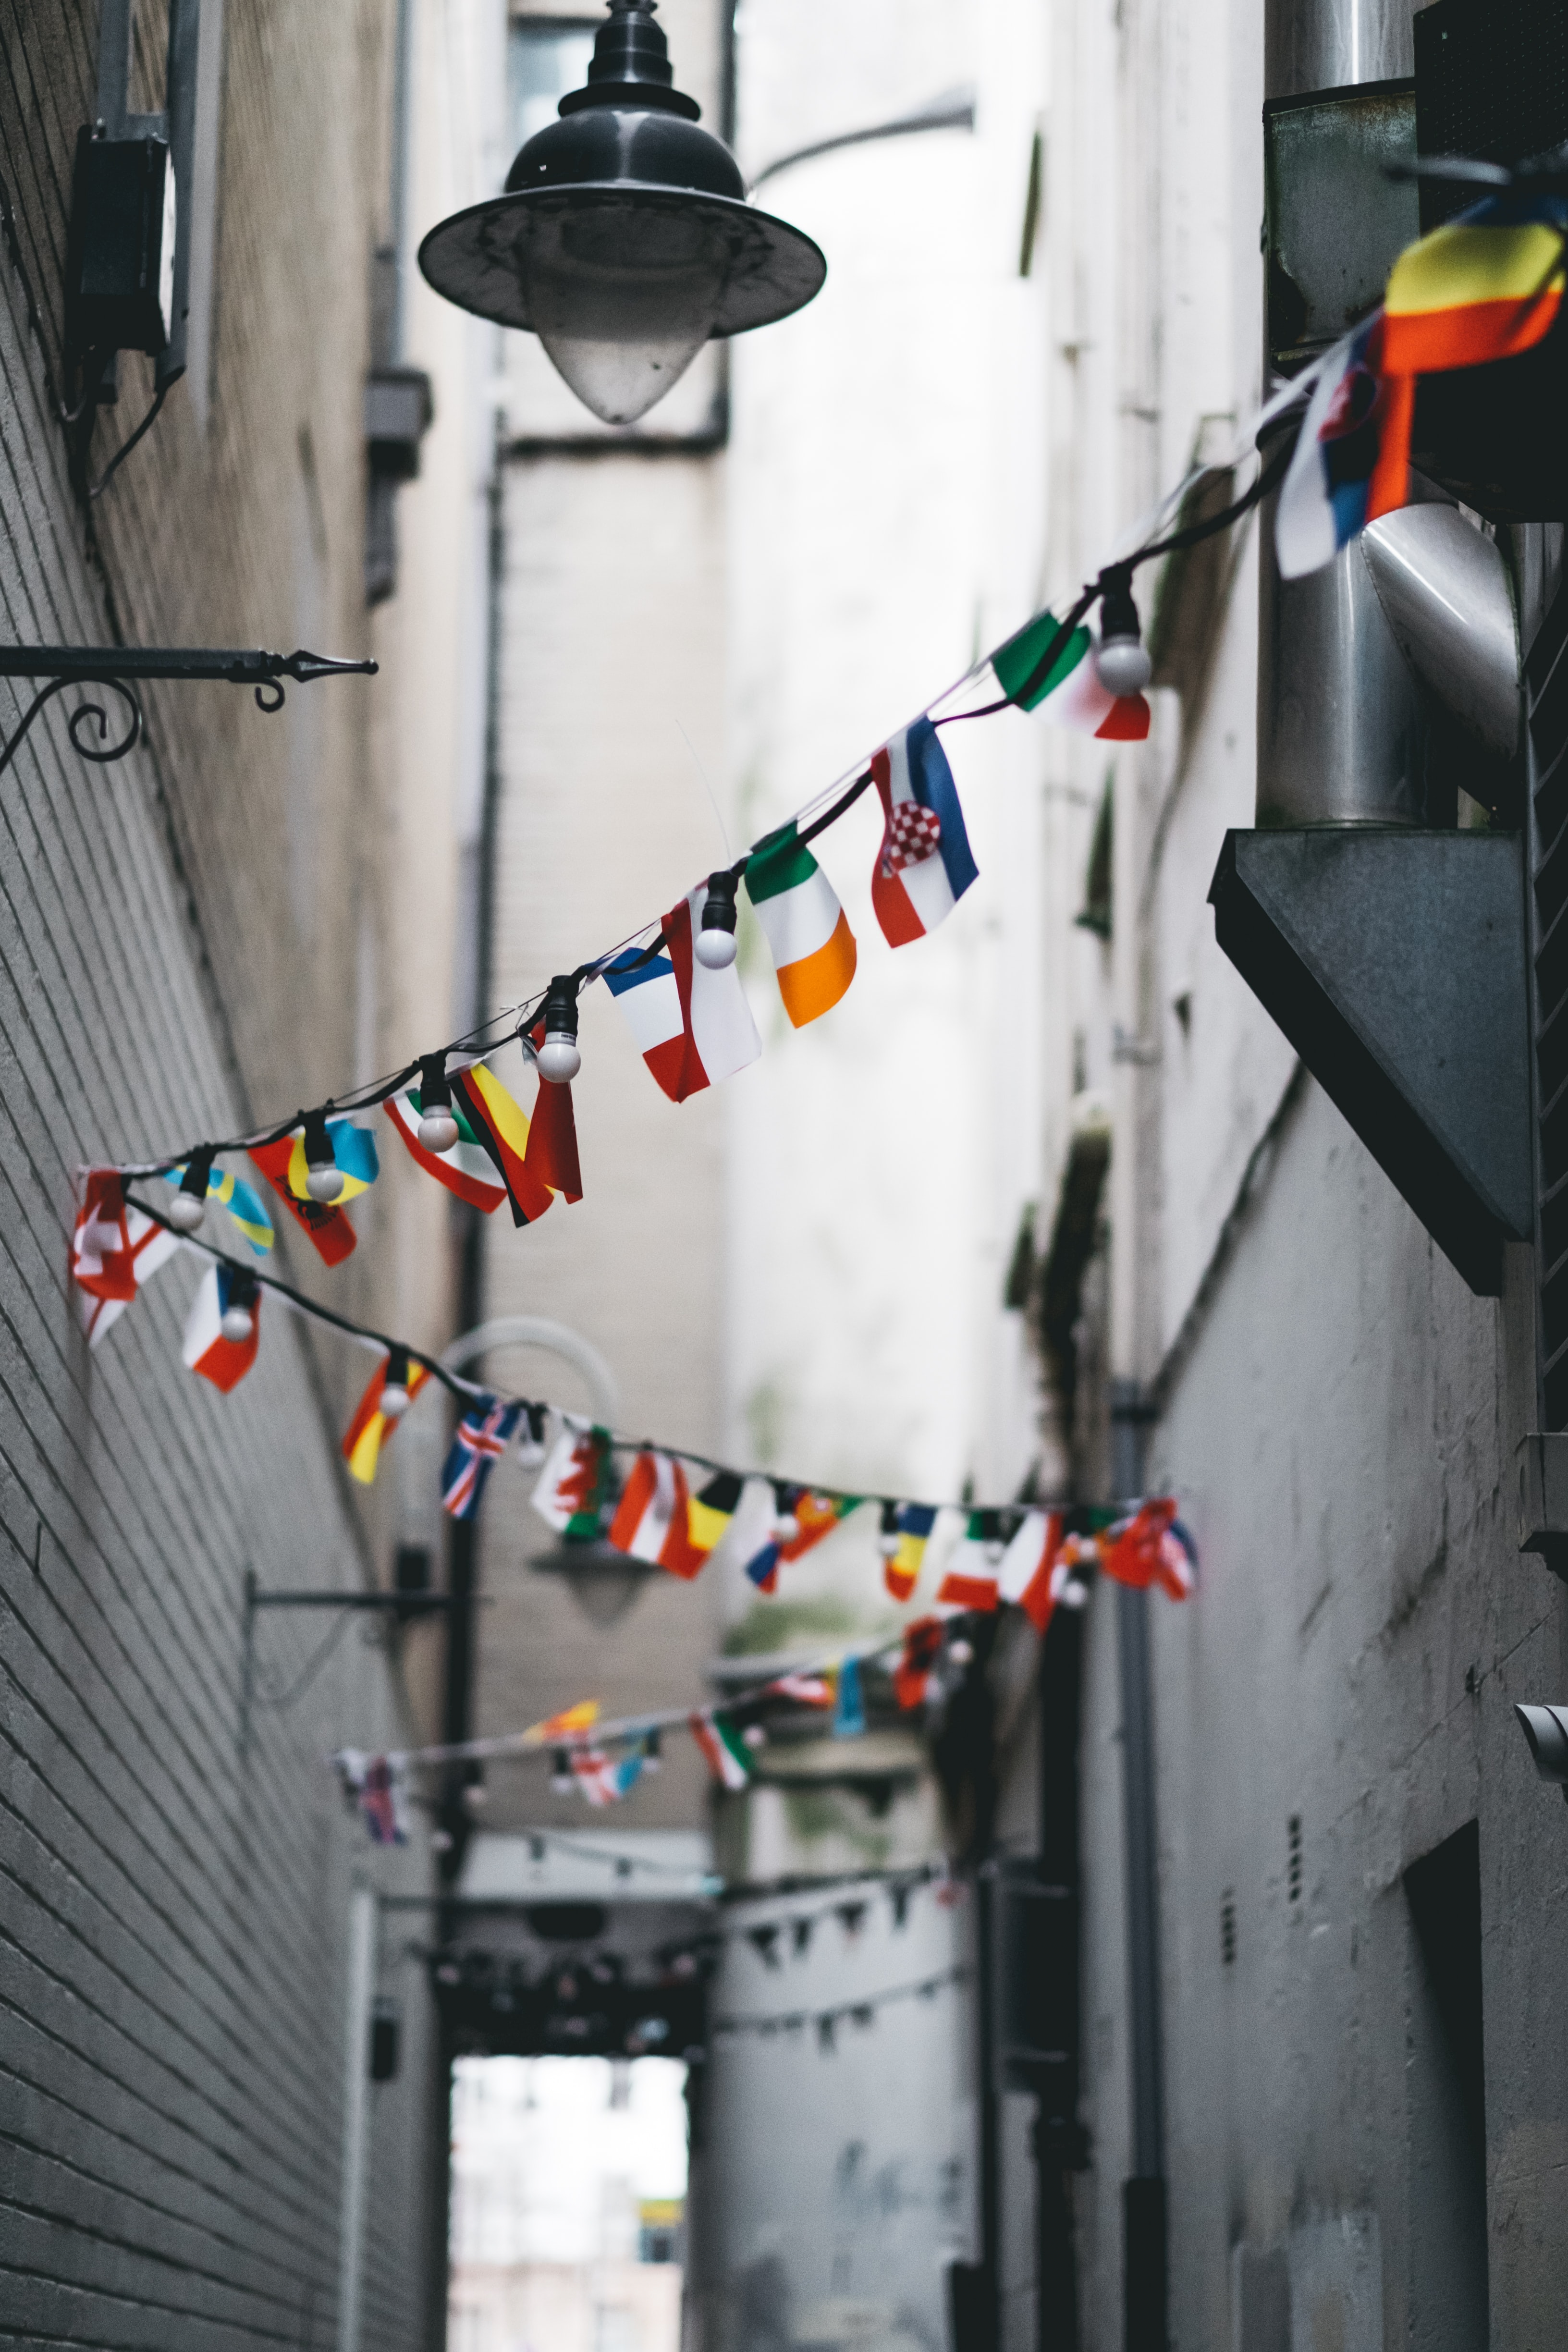 a line of flags is intertwined with a string of light in the alleyway.